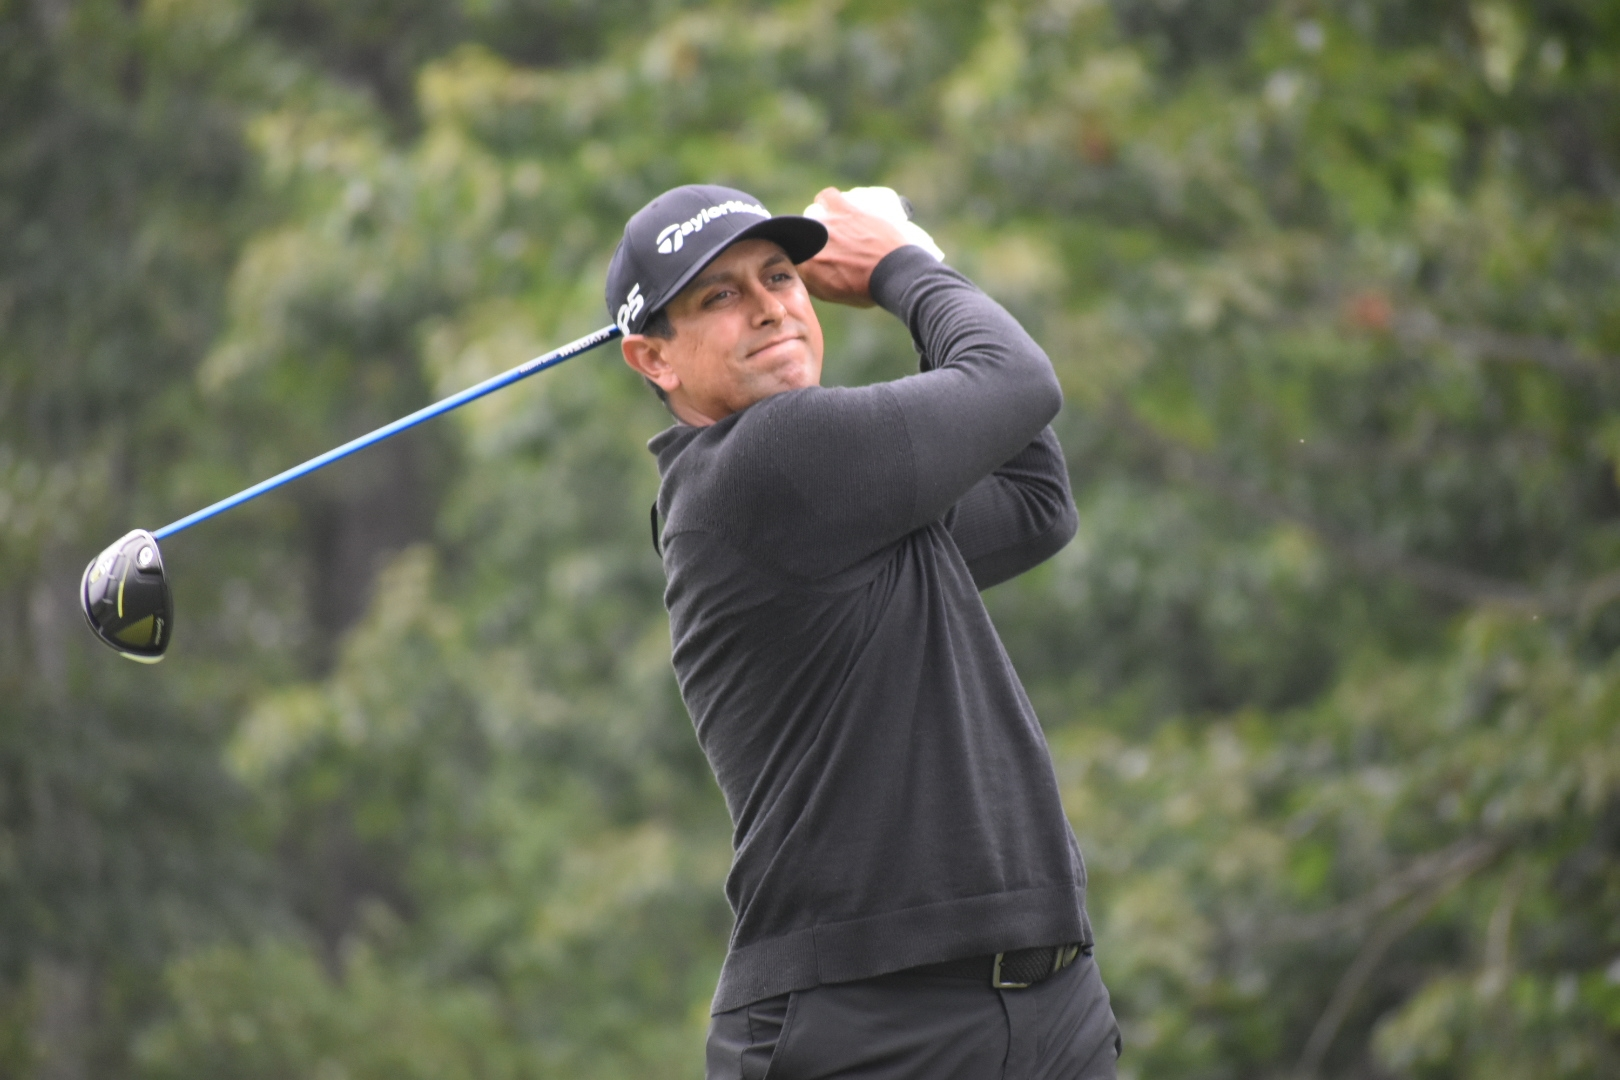 Top Players Withstand Difficult Weather Conditions to Lead NH Open